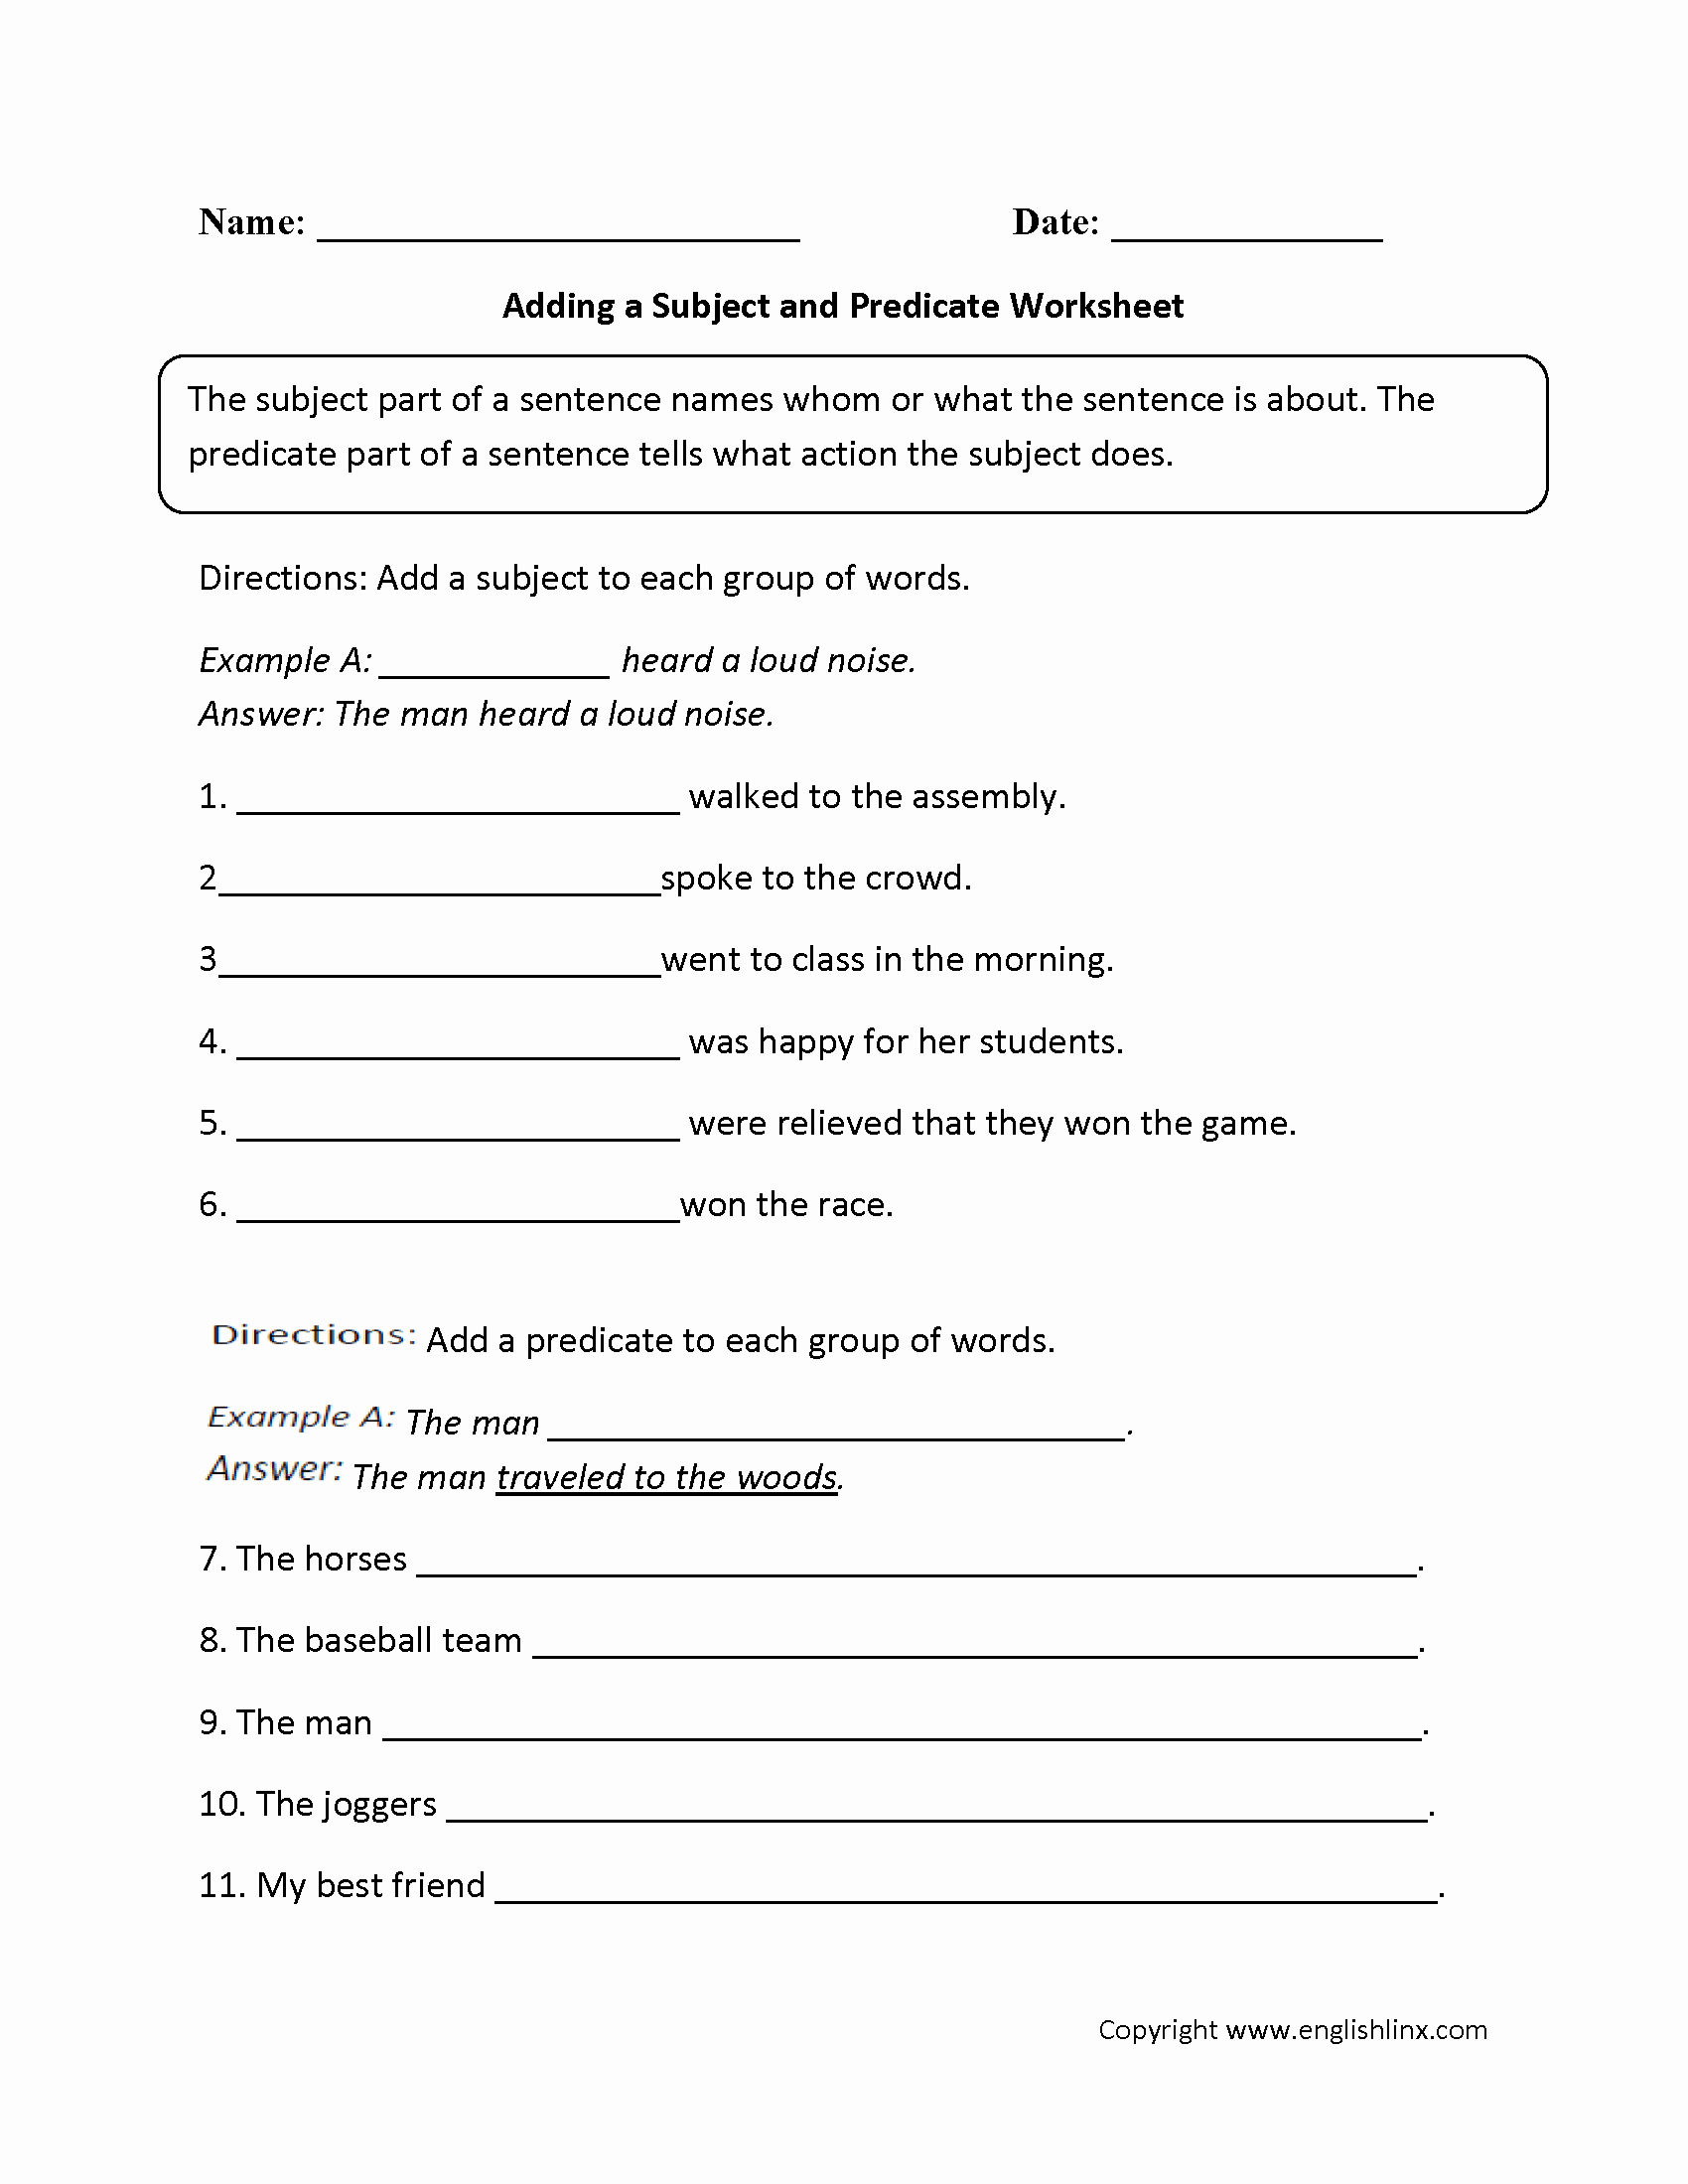 Subjects and Predicates Worksheet Luxury Englishlinx